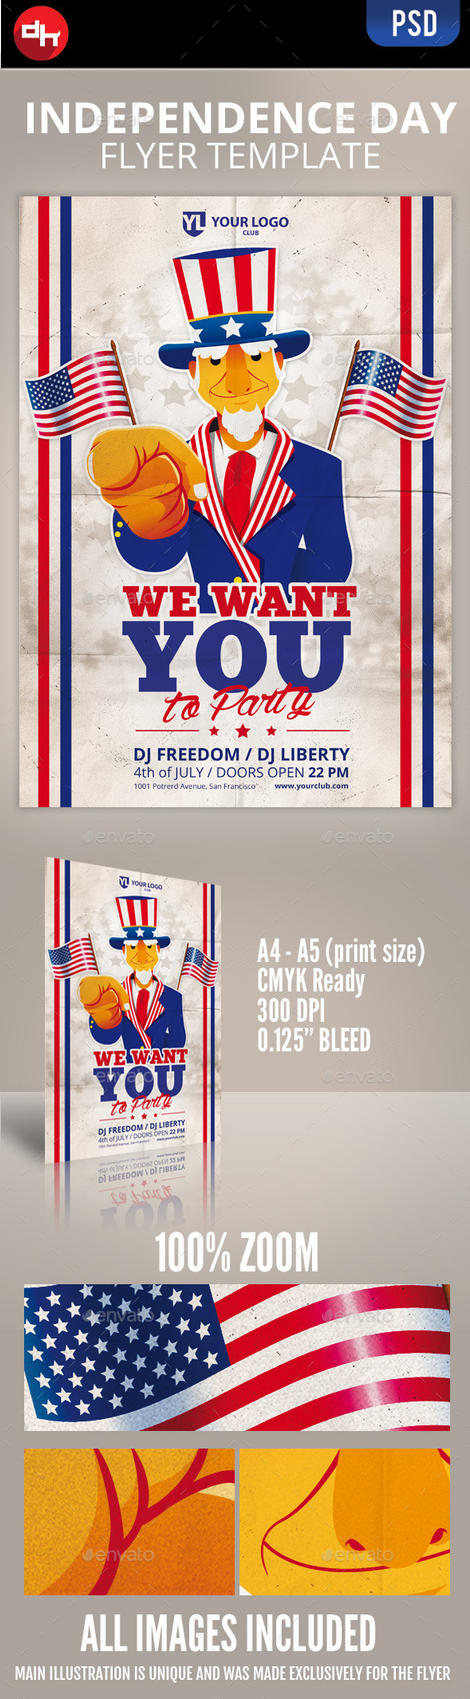 We Want You: Independence day Flyer Template by doghead